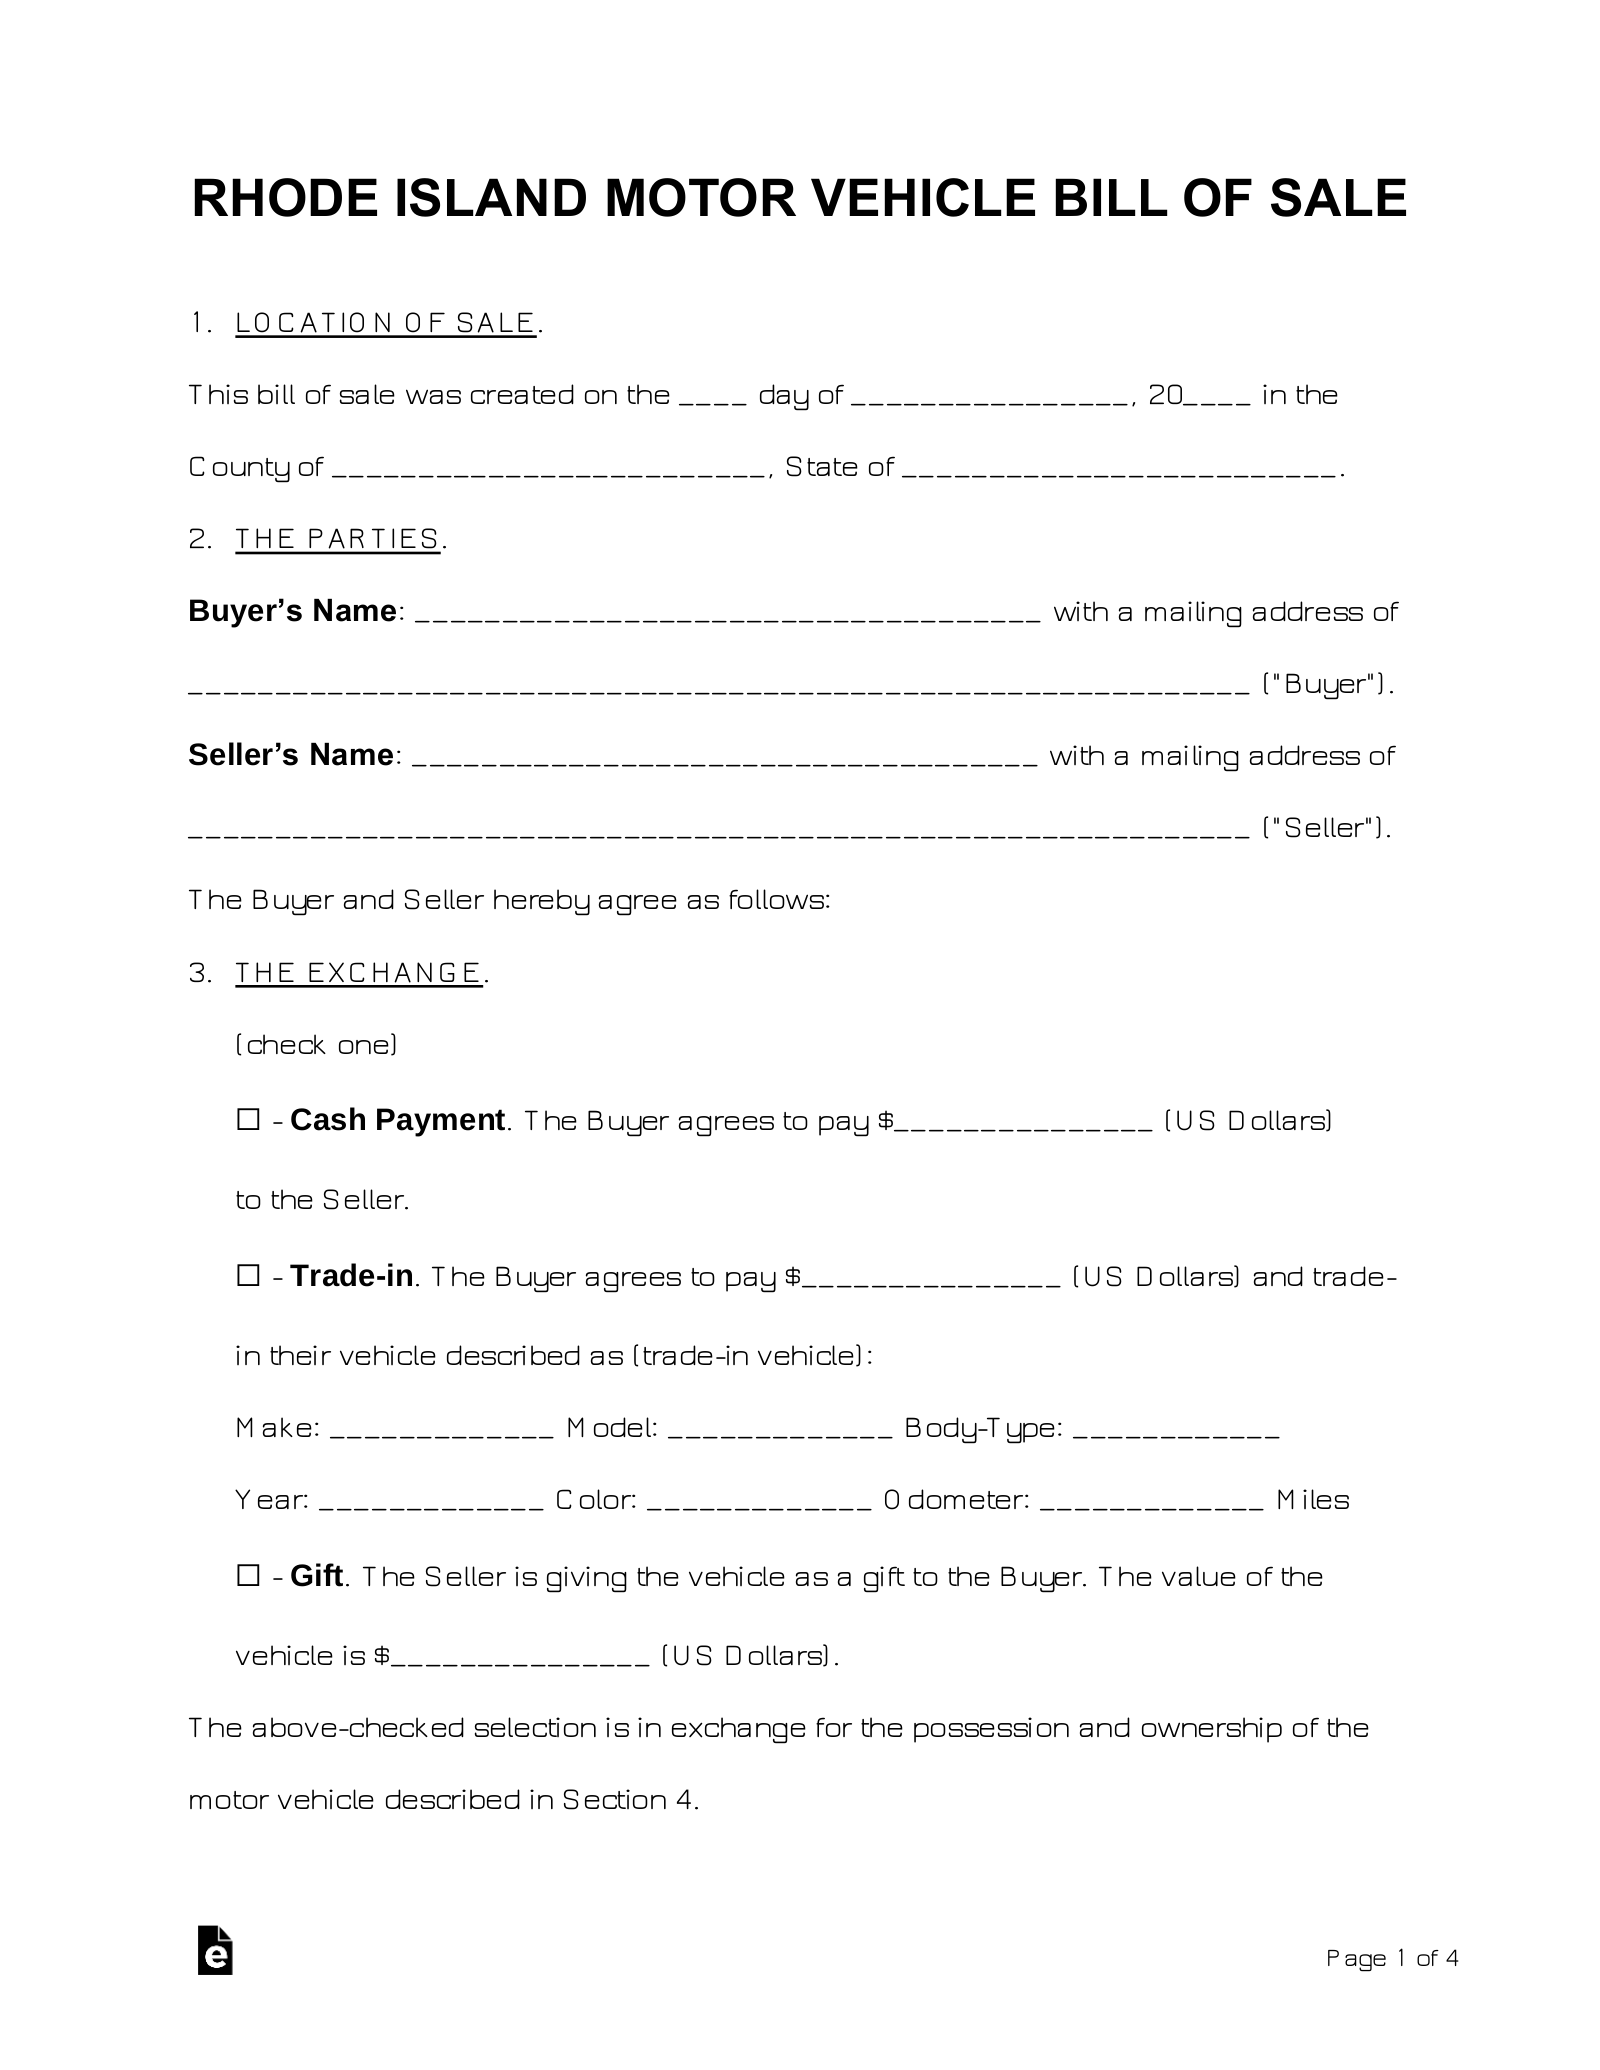 rhode-island-motor-vehicle-bill-of-sale-template Tax Donation Receipt Letter Template on donation receipt form template, church donation receipt template, car sale receipt template, non-profit donation receipt template, charitable donation receipt template,